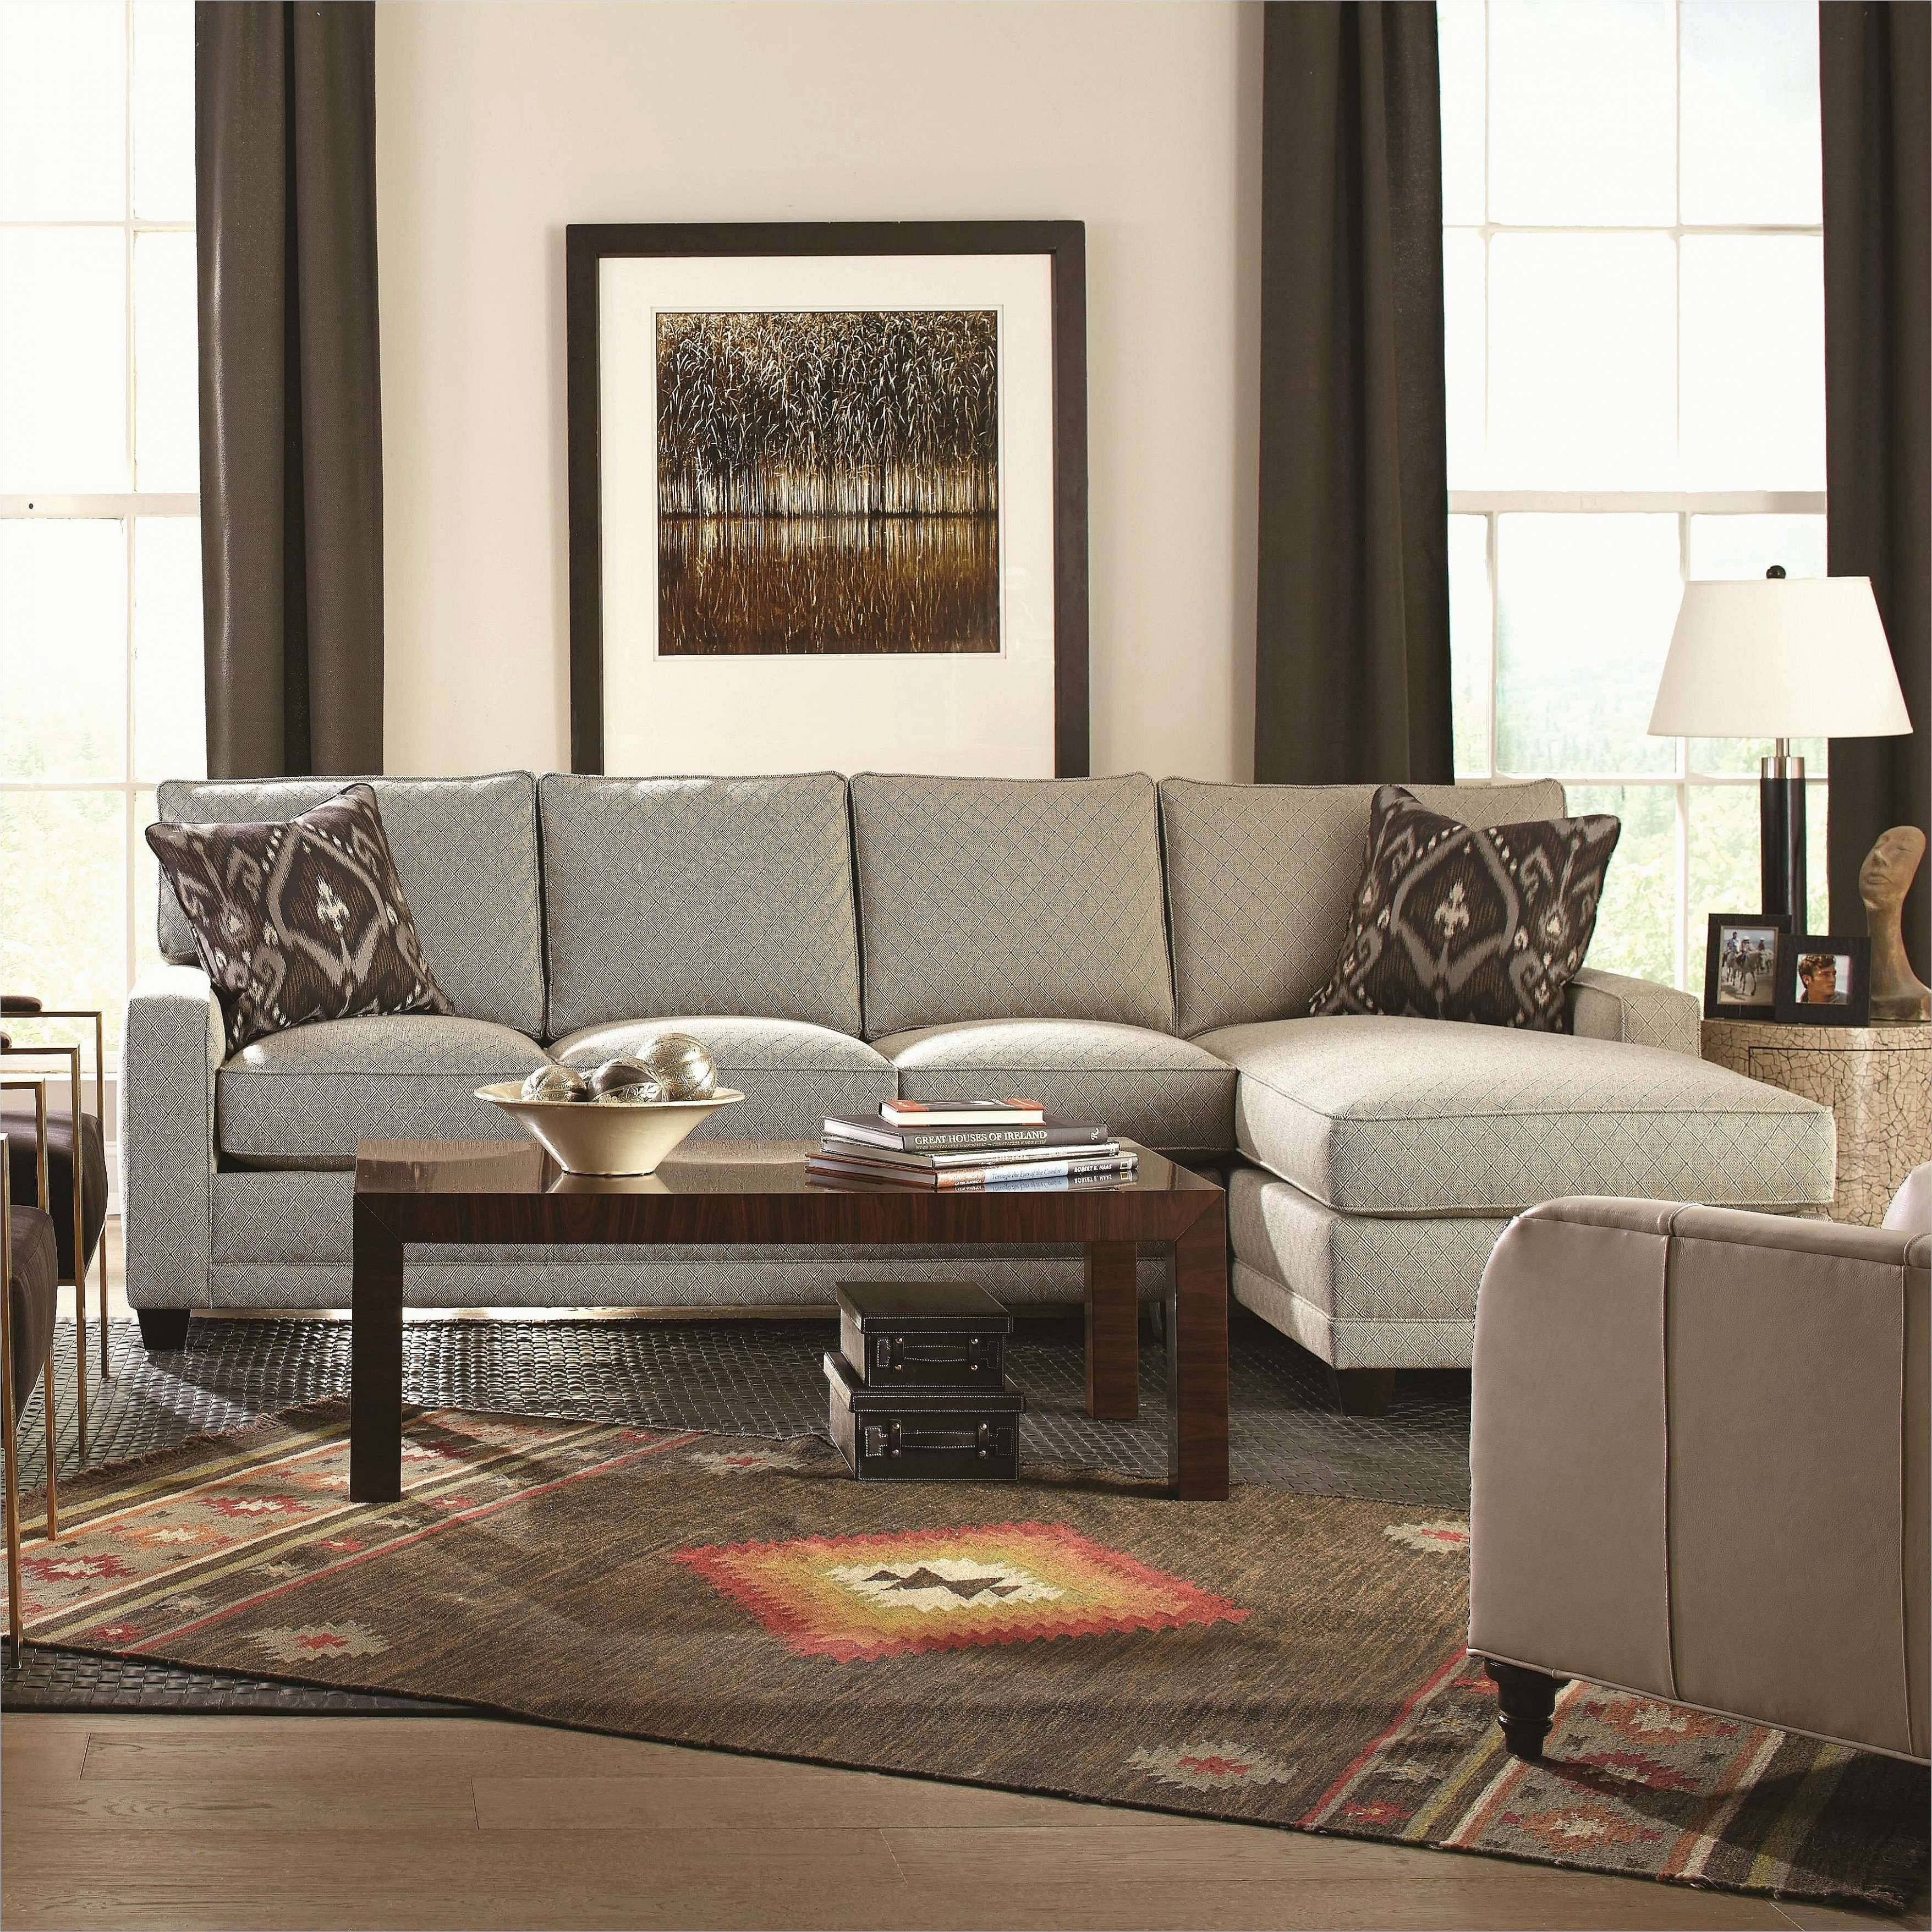 sofa ke design furniture best of bedroom furniture small apartments my tech your web of sofa ke design furniture